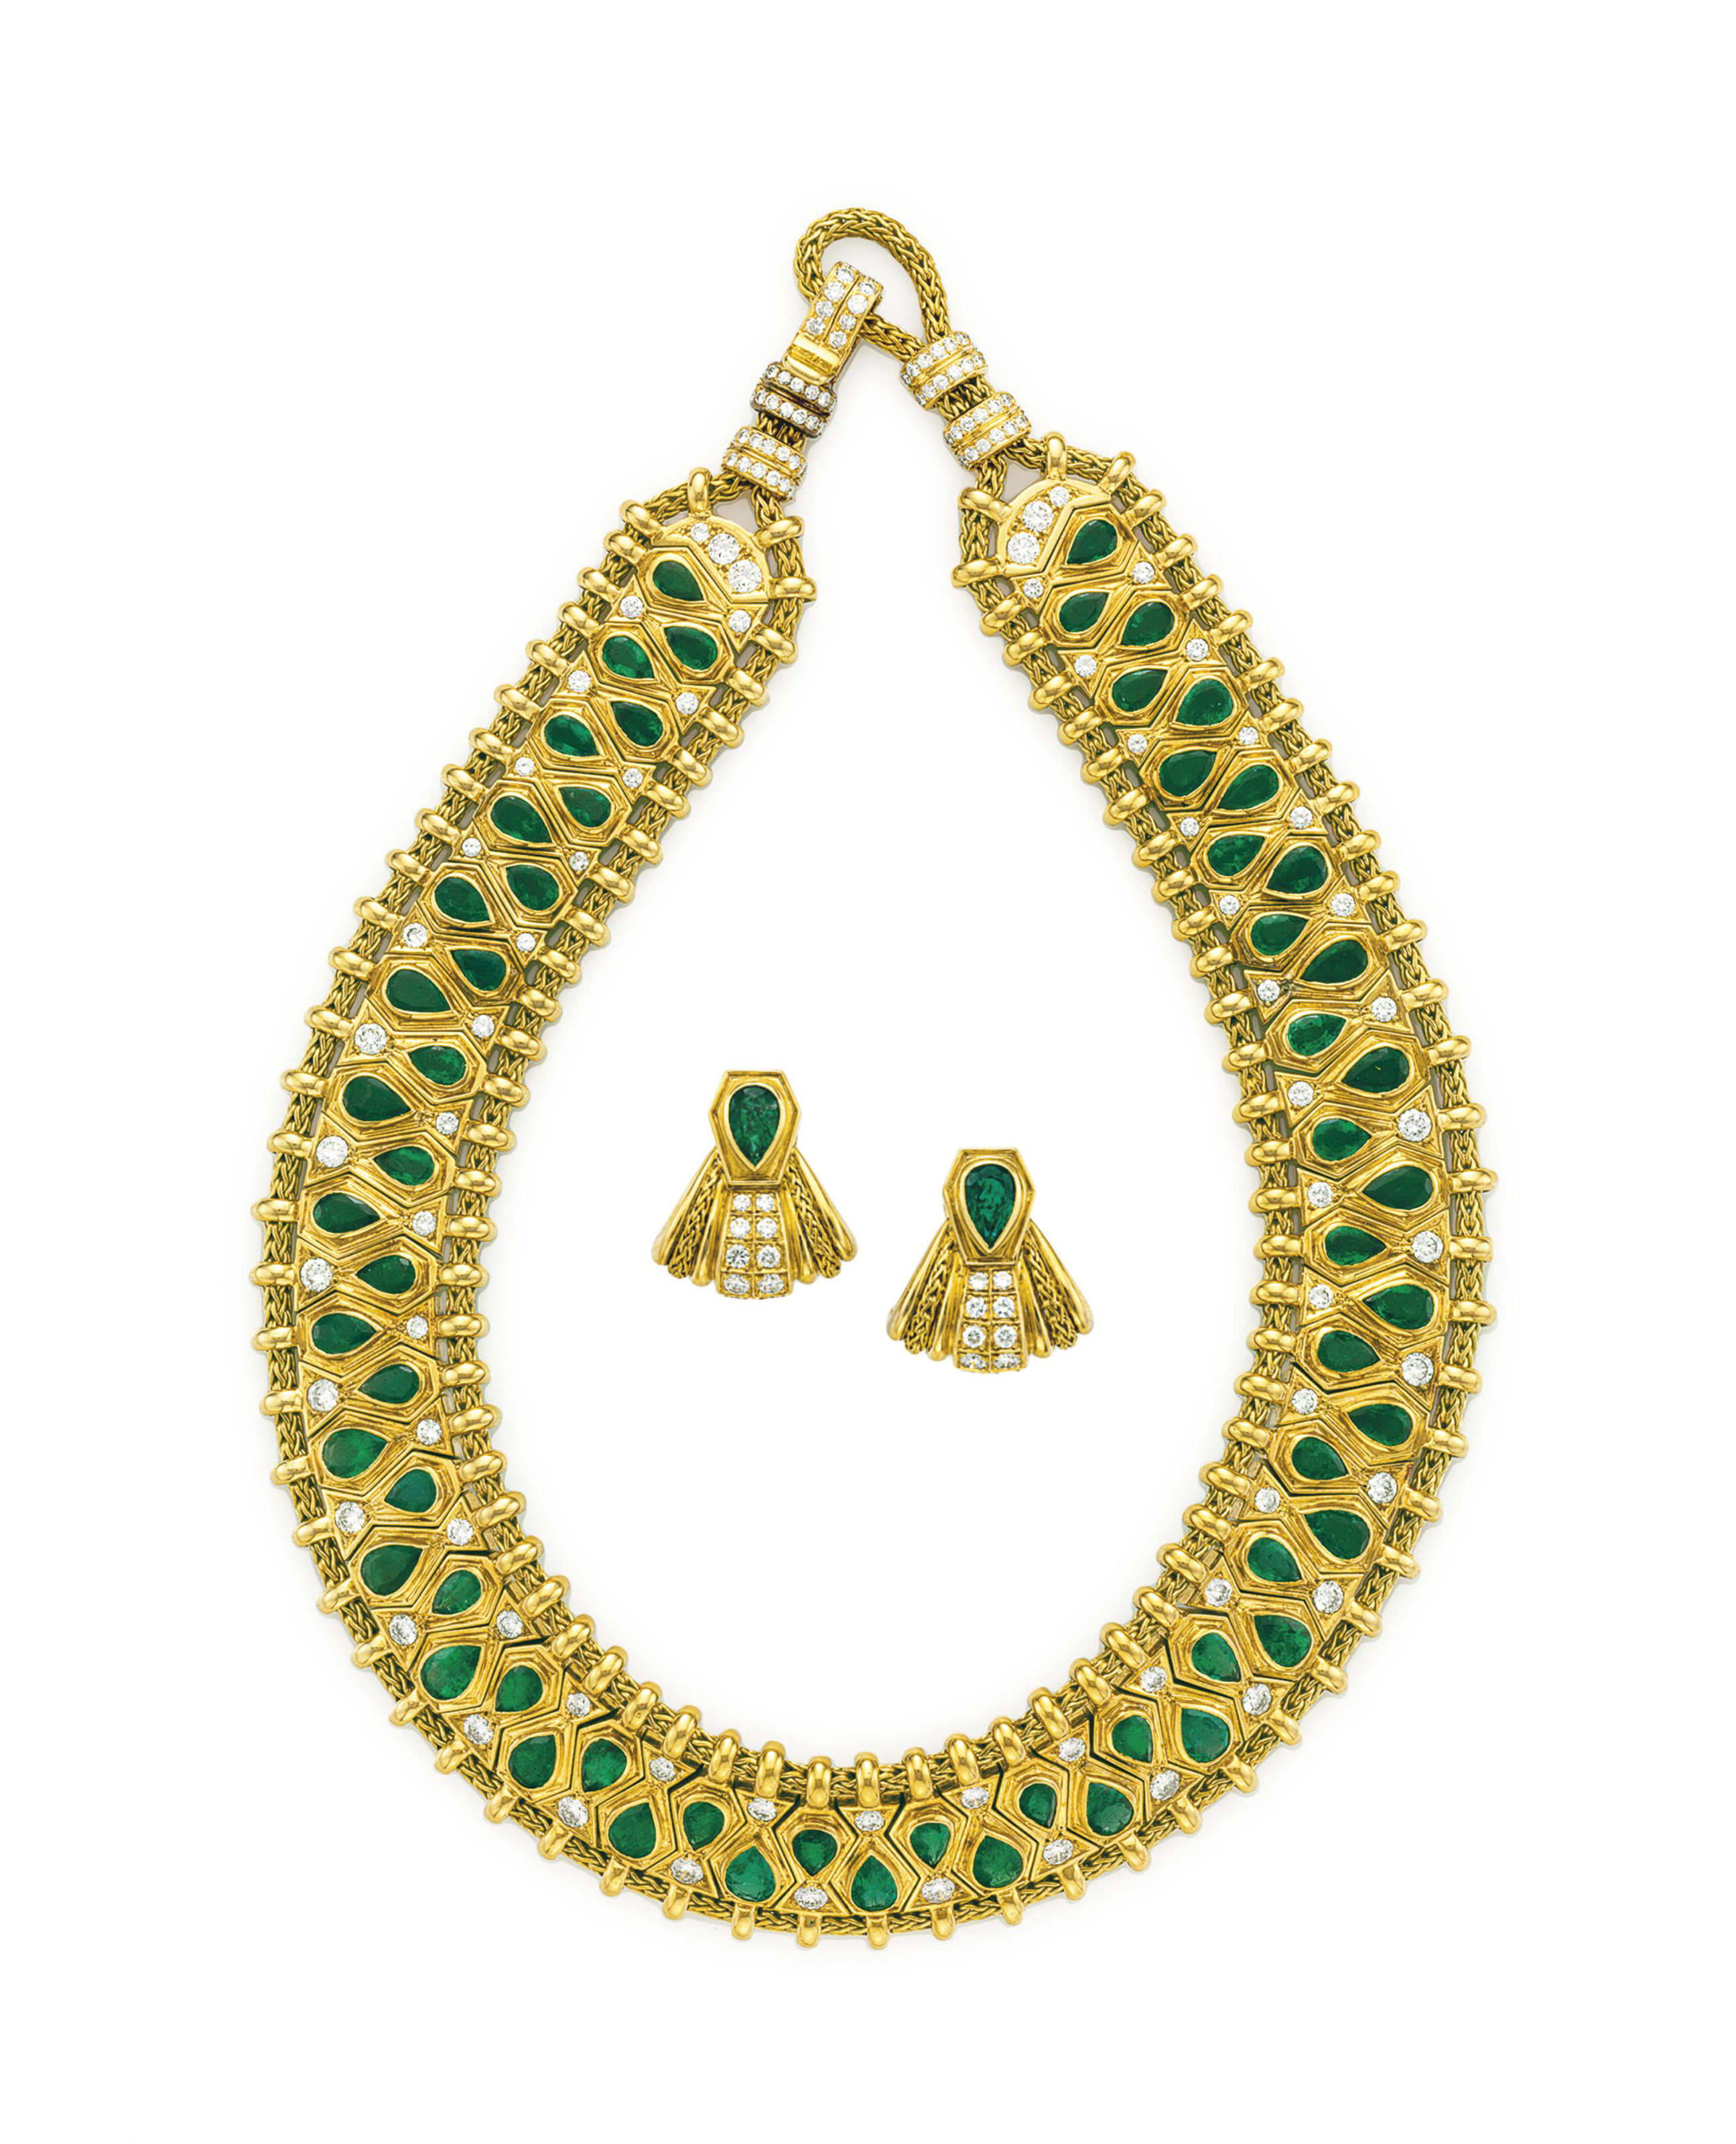 A SET OF HINDU EMERALD DIAMOND AND GOLD JEWELRY BY REN BOIVIN